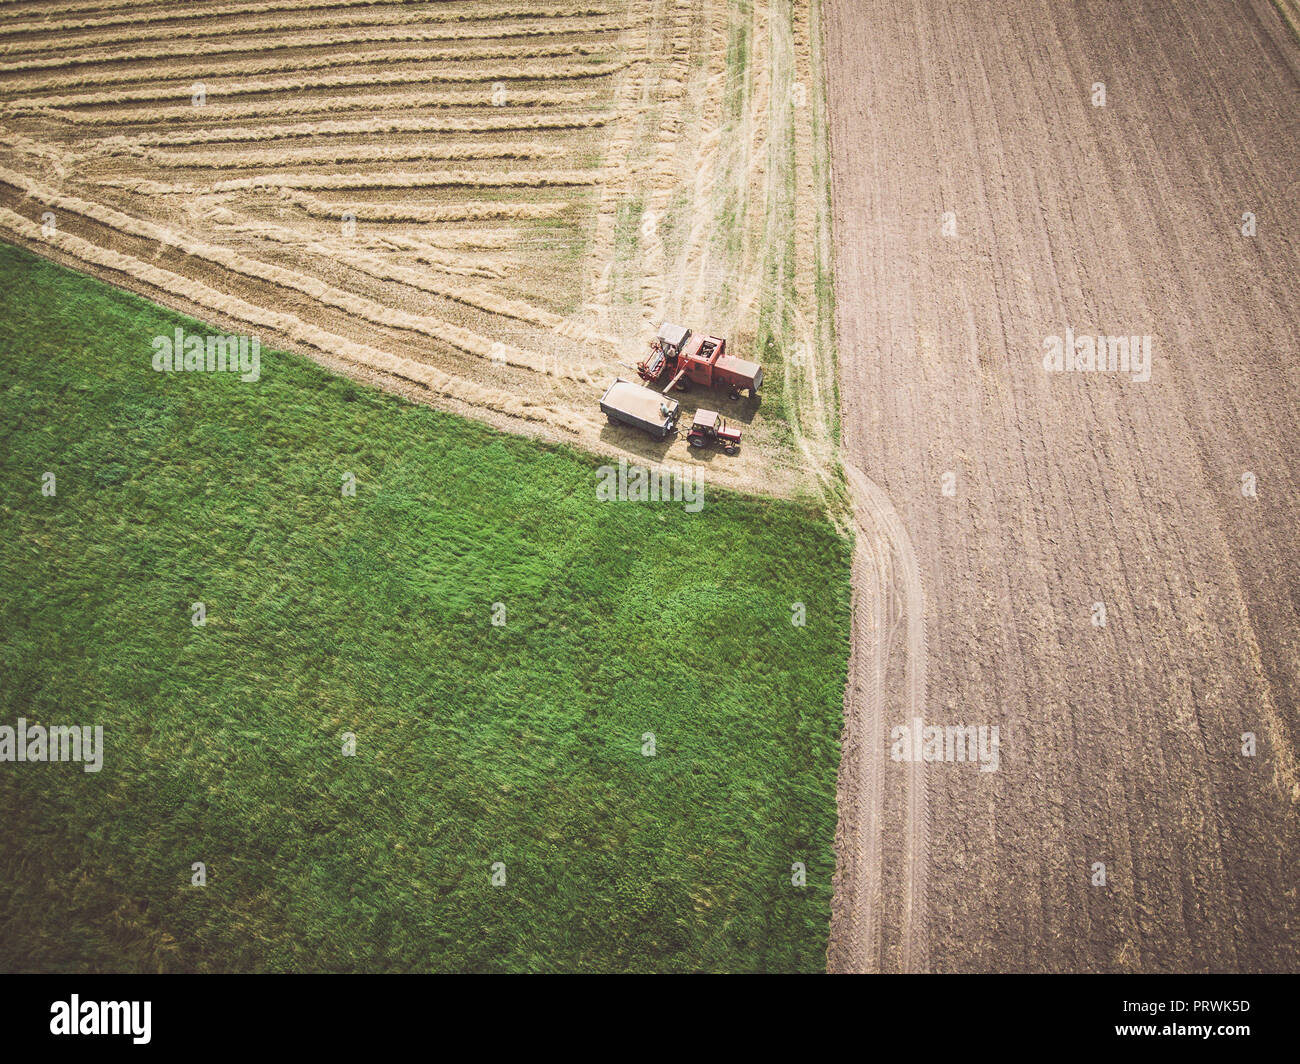 Aerial view of combine-harvester and tractor working in the field - Stock Image